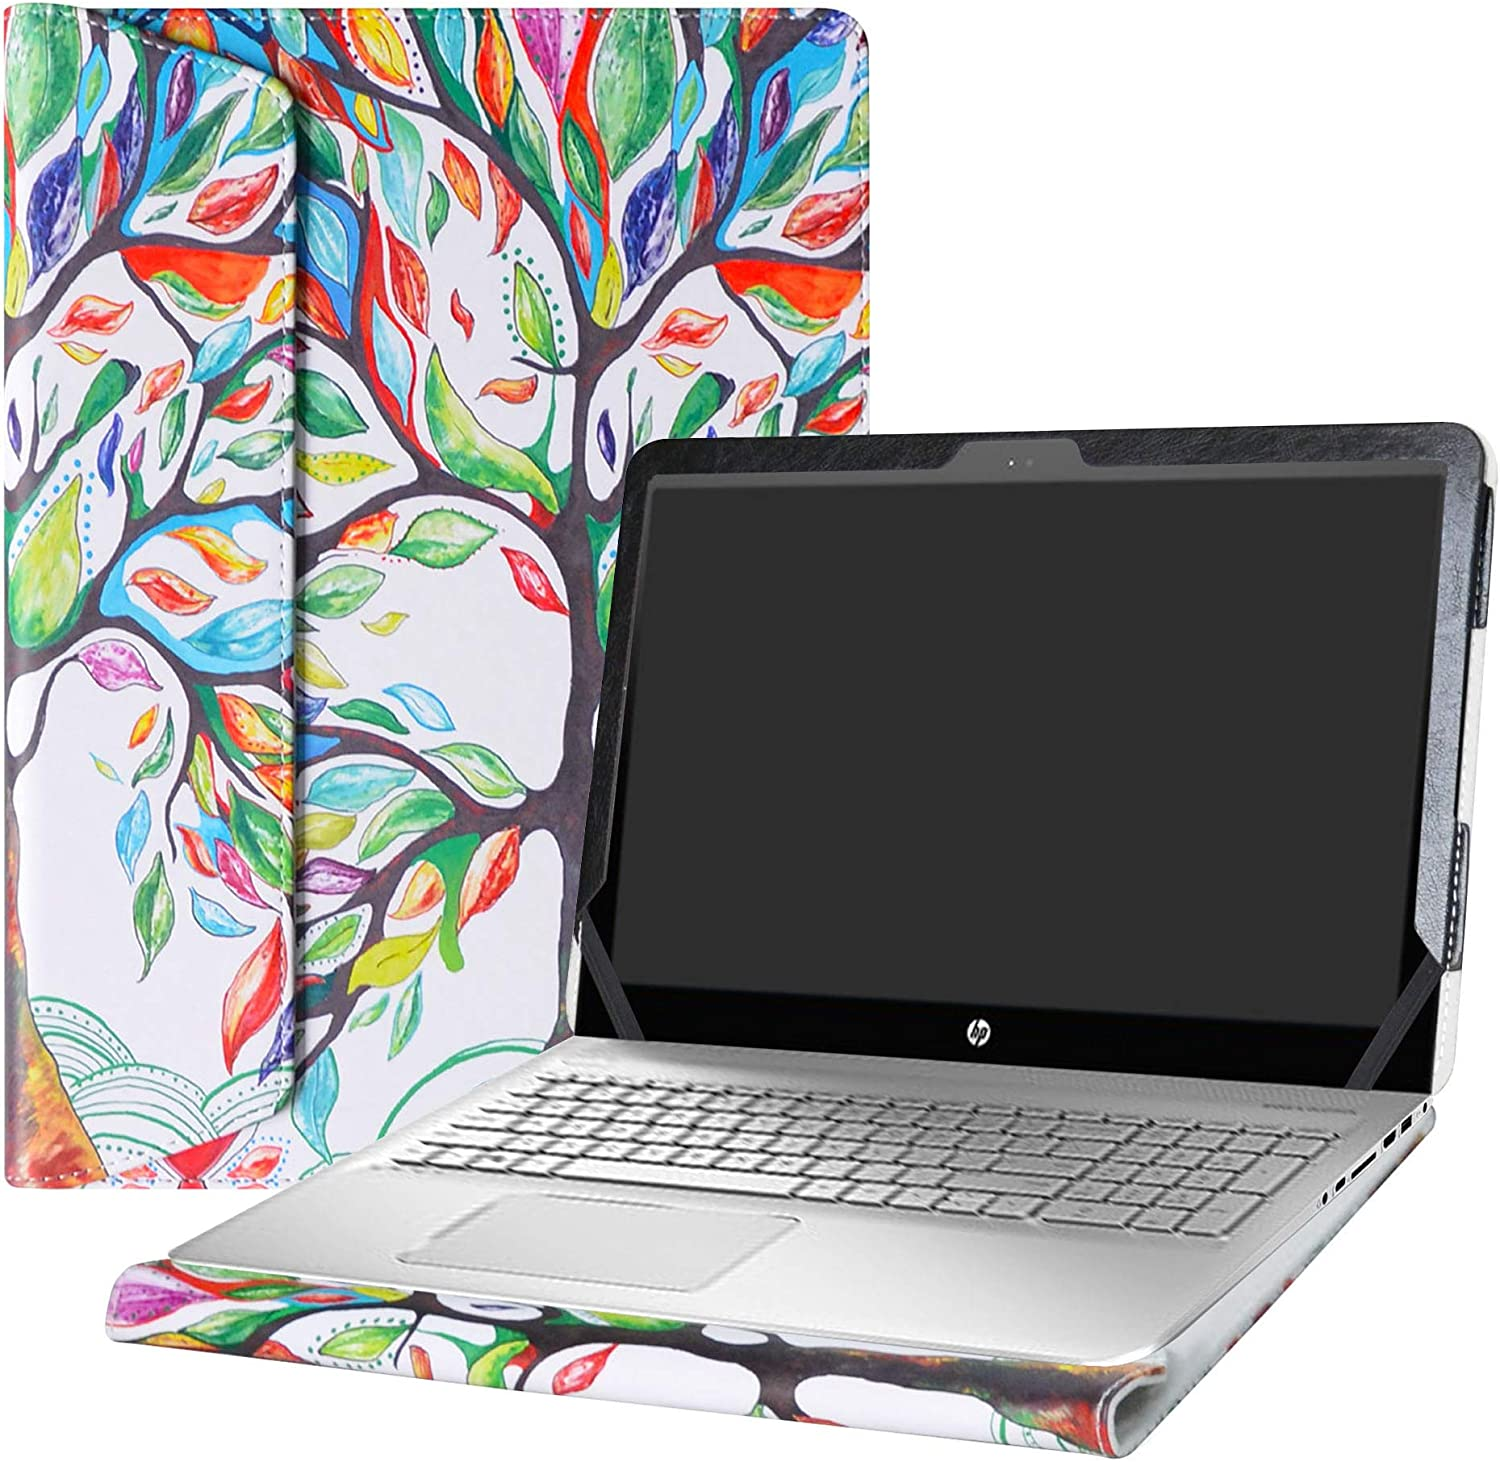 """Alapmk Protective Case Cover for 15.6"""" HP Envy 15 15-asXXX (15-as000 to 15-as999,Such as 15-as020nr 15-as120nr 15-as014wm) Laptop [Warning:Not fit Envy 15 15-aeXXX 15-ahXXX 15-kXXX Series],Love Tree"""